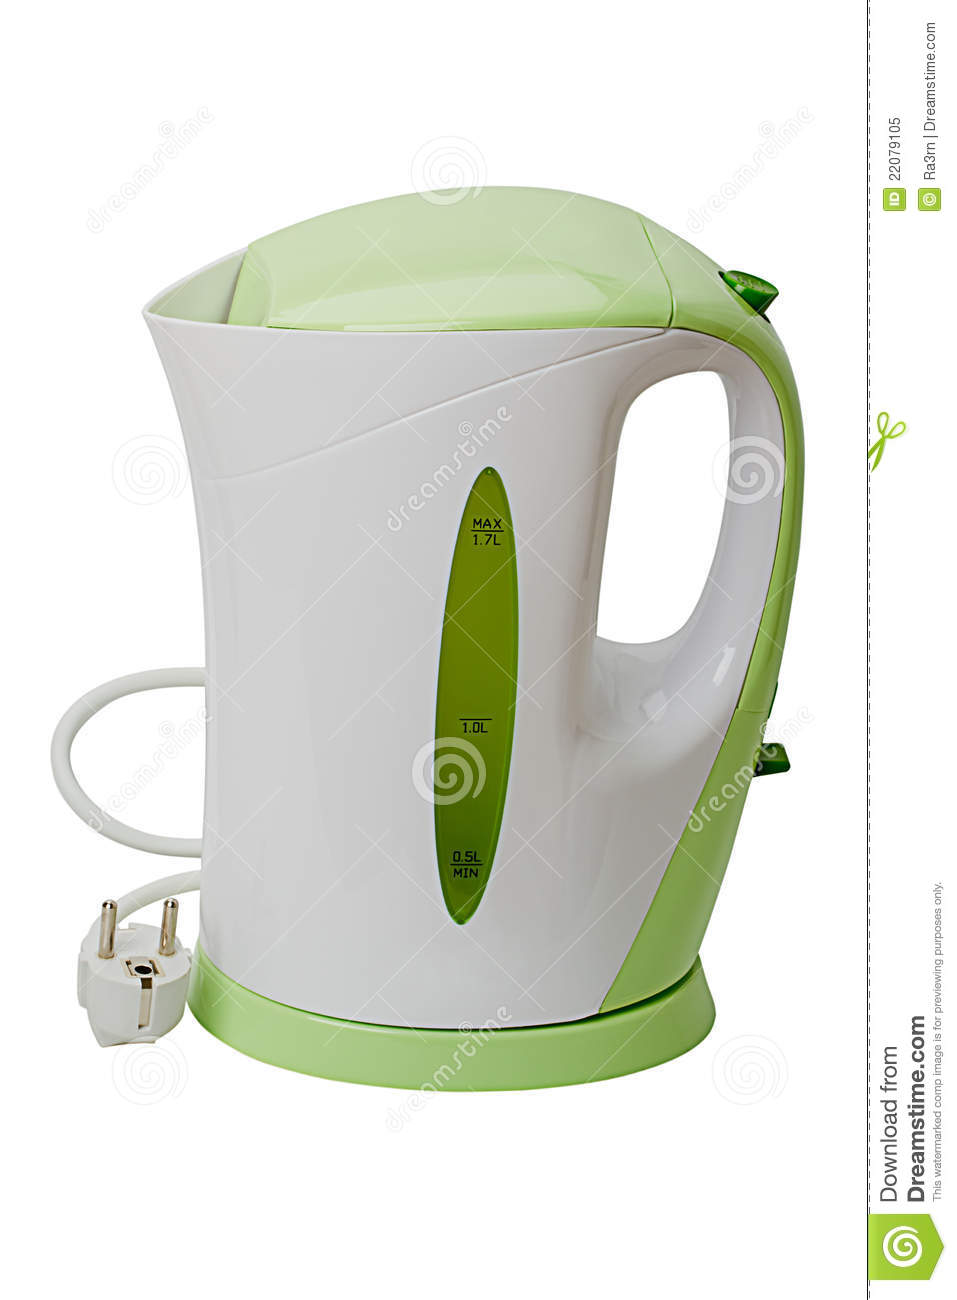 Electric kettle on white